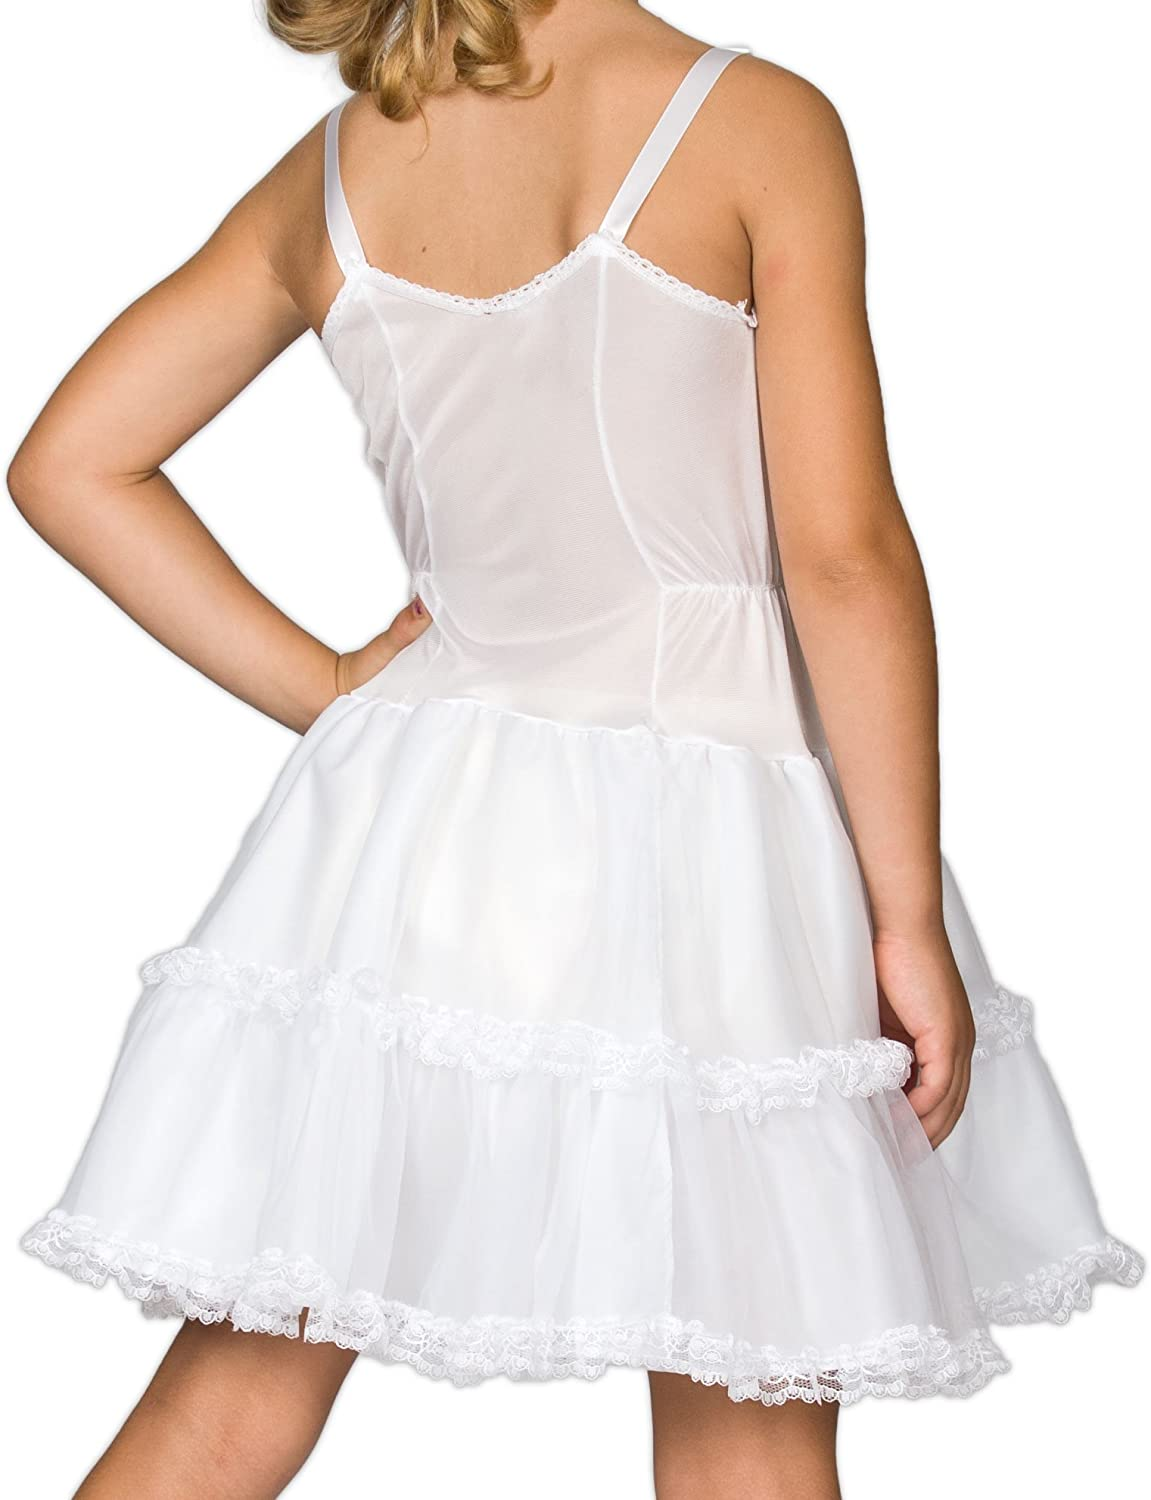 I.C 2T Collections Little Girls White Embellished A-Line Slip 6X